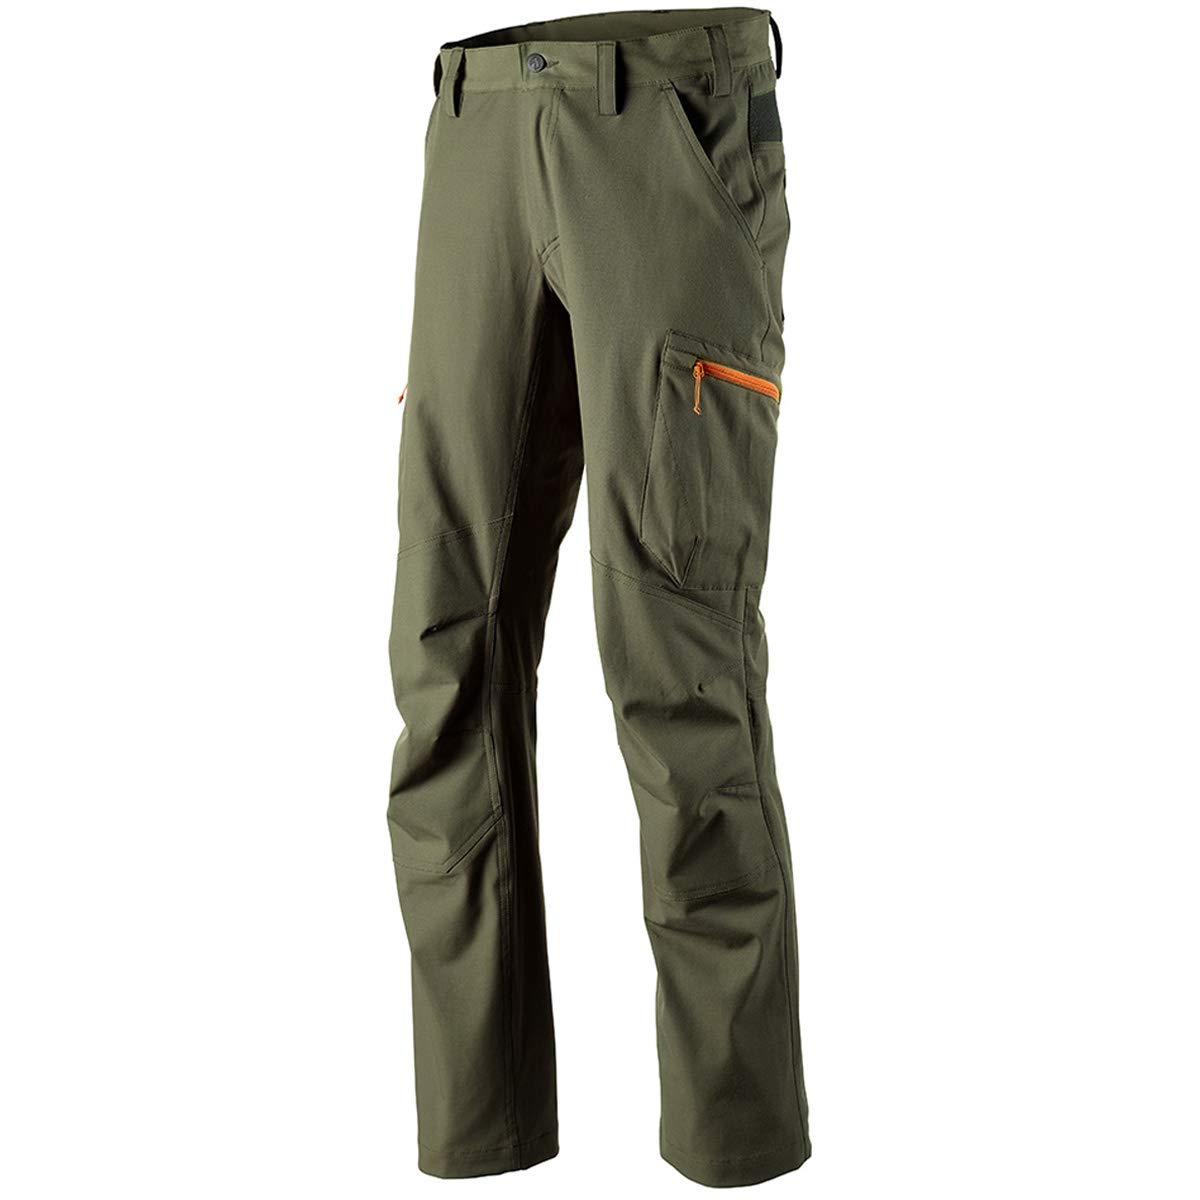 Haix Active Pro Pants, Farbe:Olive, Farbe:Olive, Farbe:Olive, Größe:50 8aade6